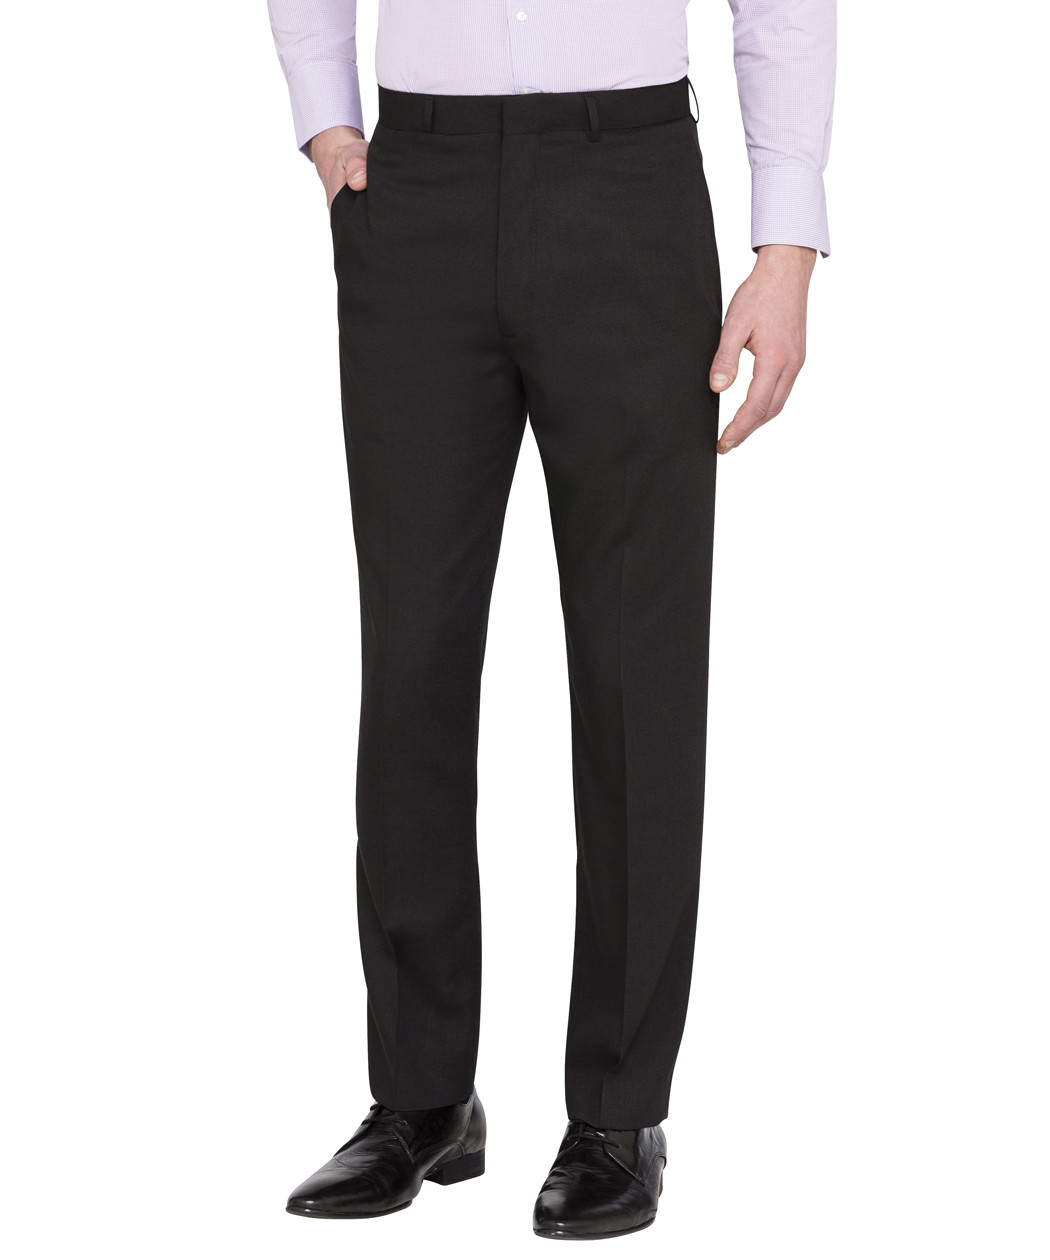 Business Trousers business trousers CRFYTXO